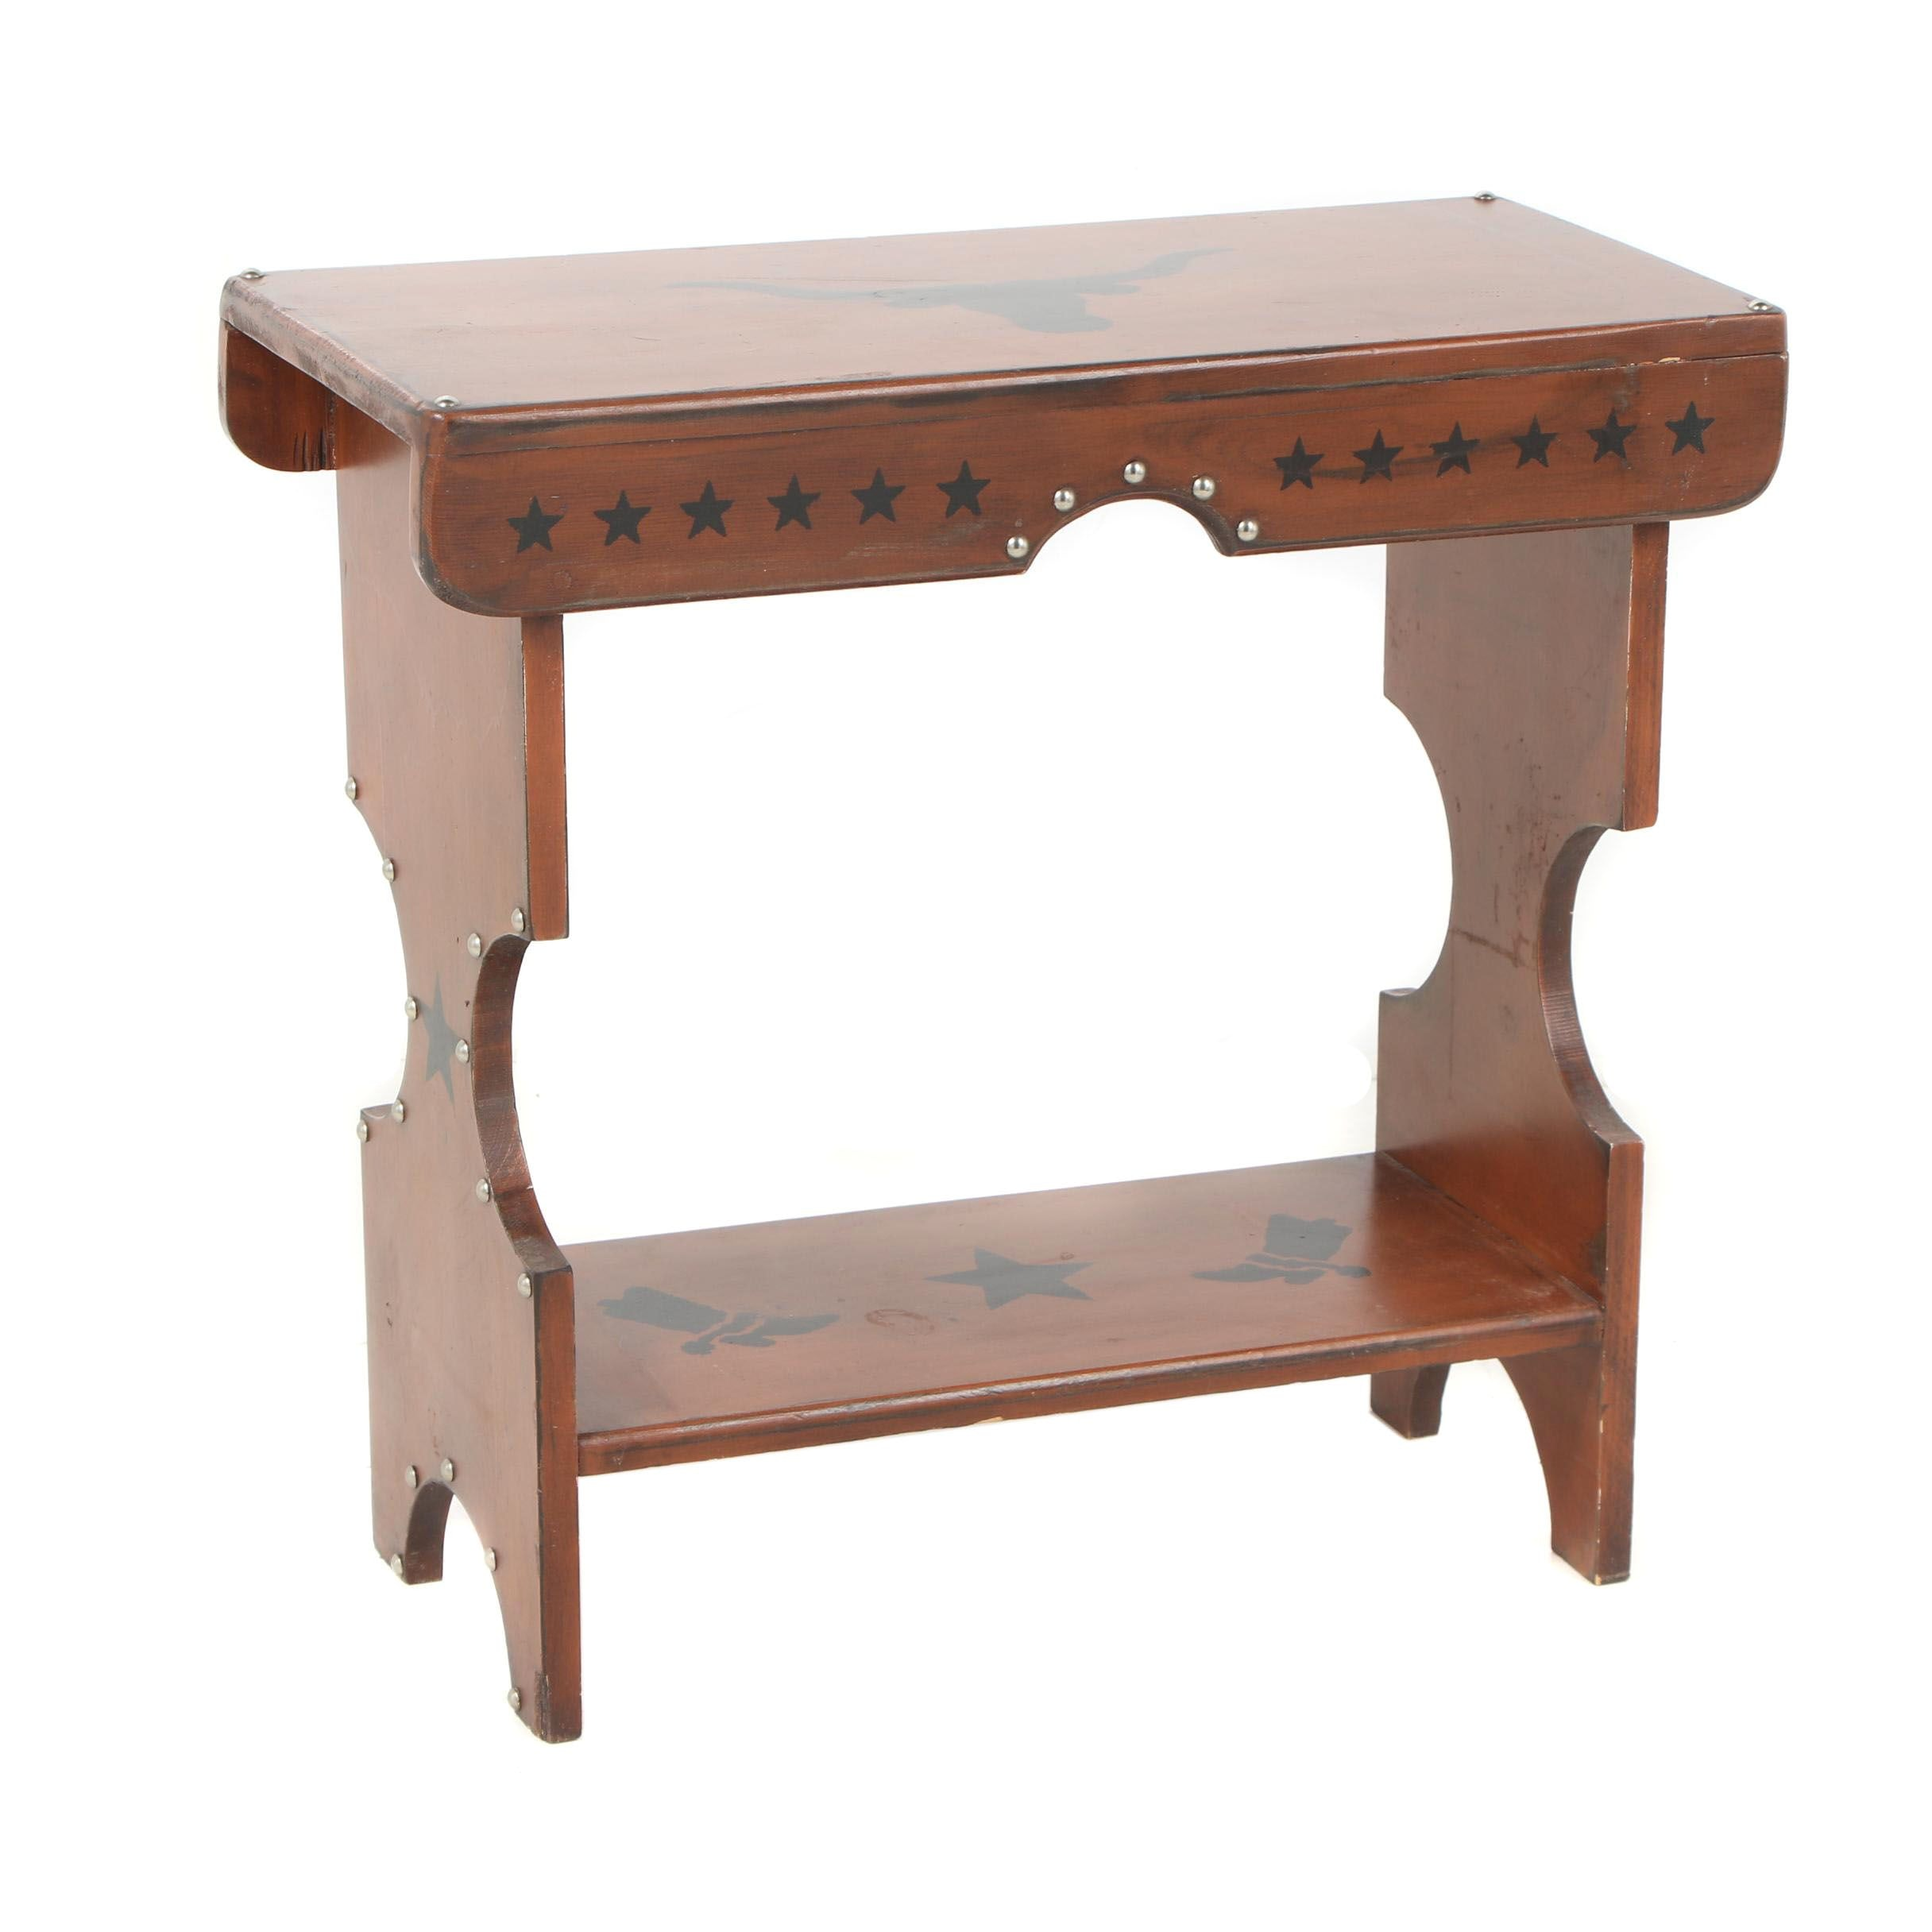 Wooden Table with Painted Western Designs